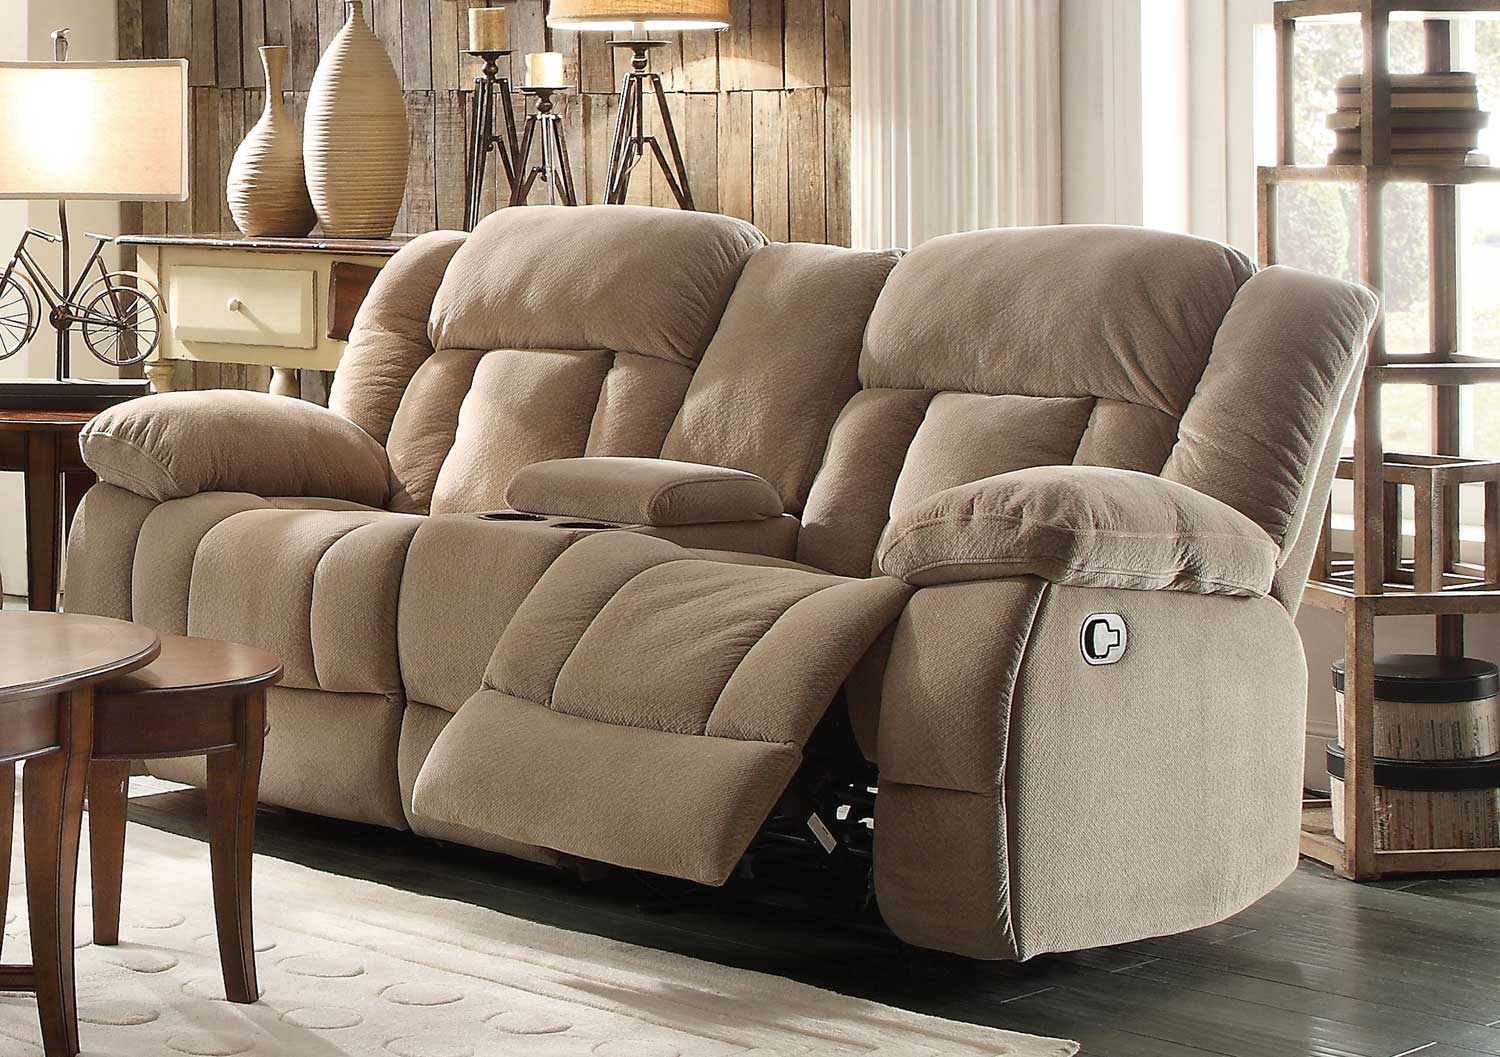 Homelegance Laurelton Double Glider Reclining Love Seat with Center Console - Taupe Fabric & Homelegance Laurelton Double Glider Reclining Love Seat with ... islam-shia.org